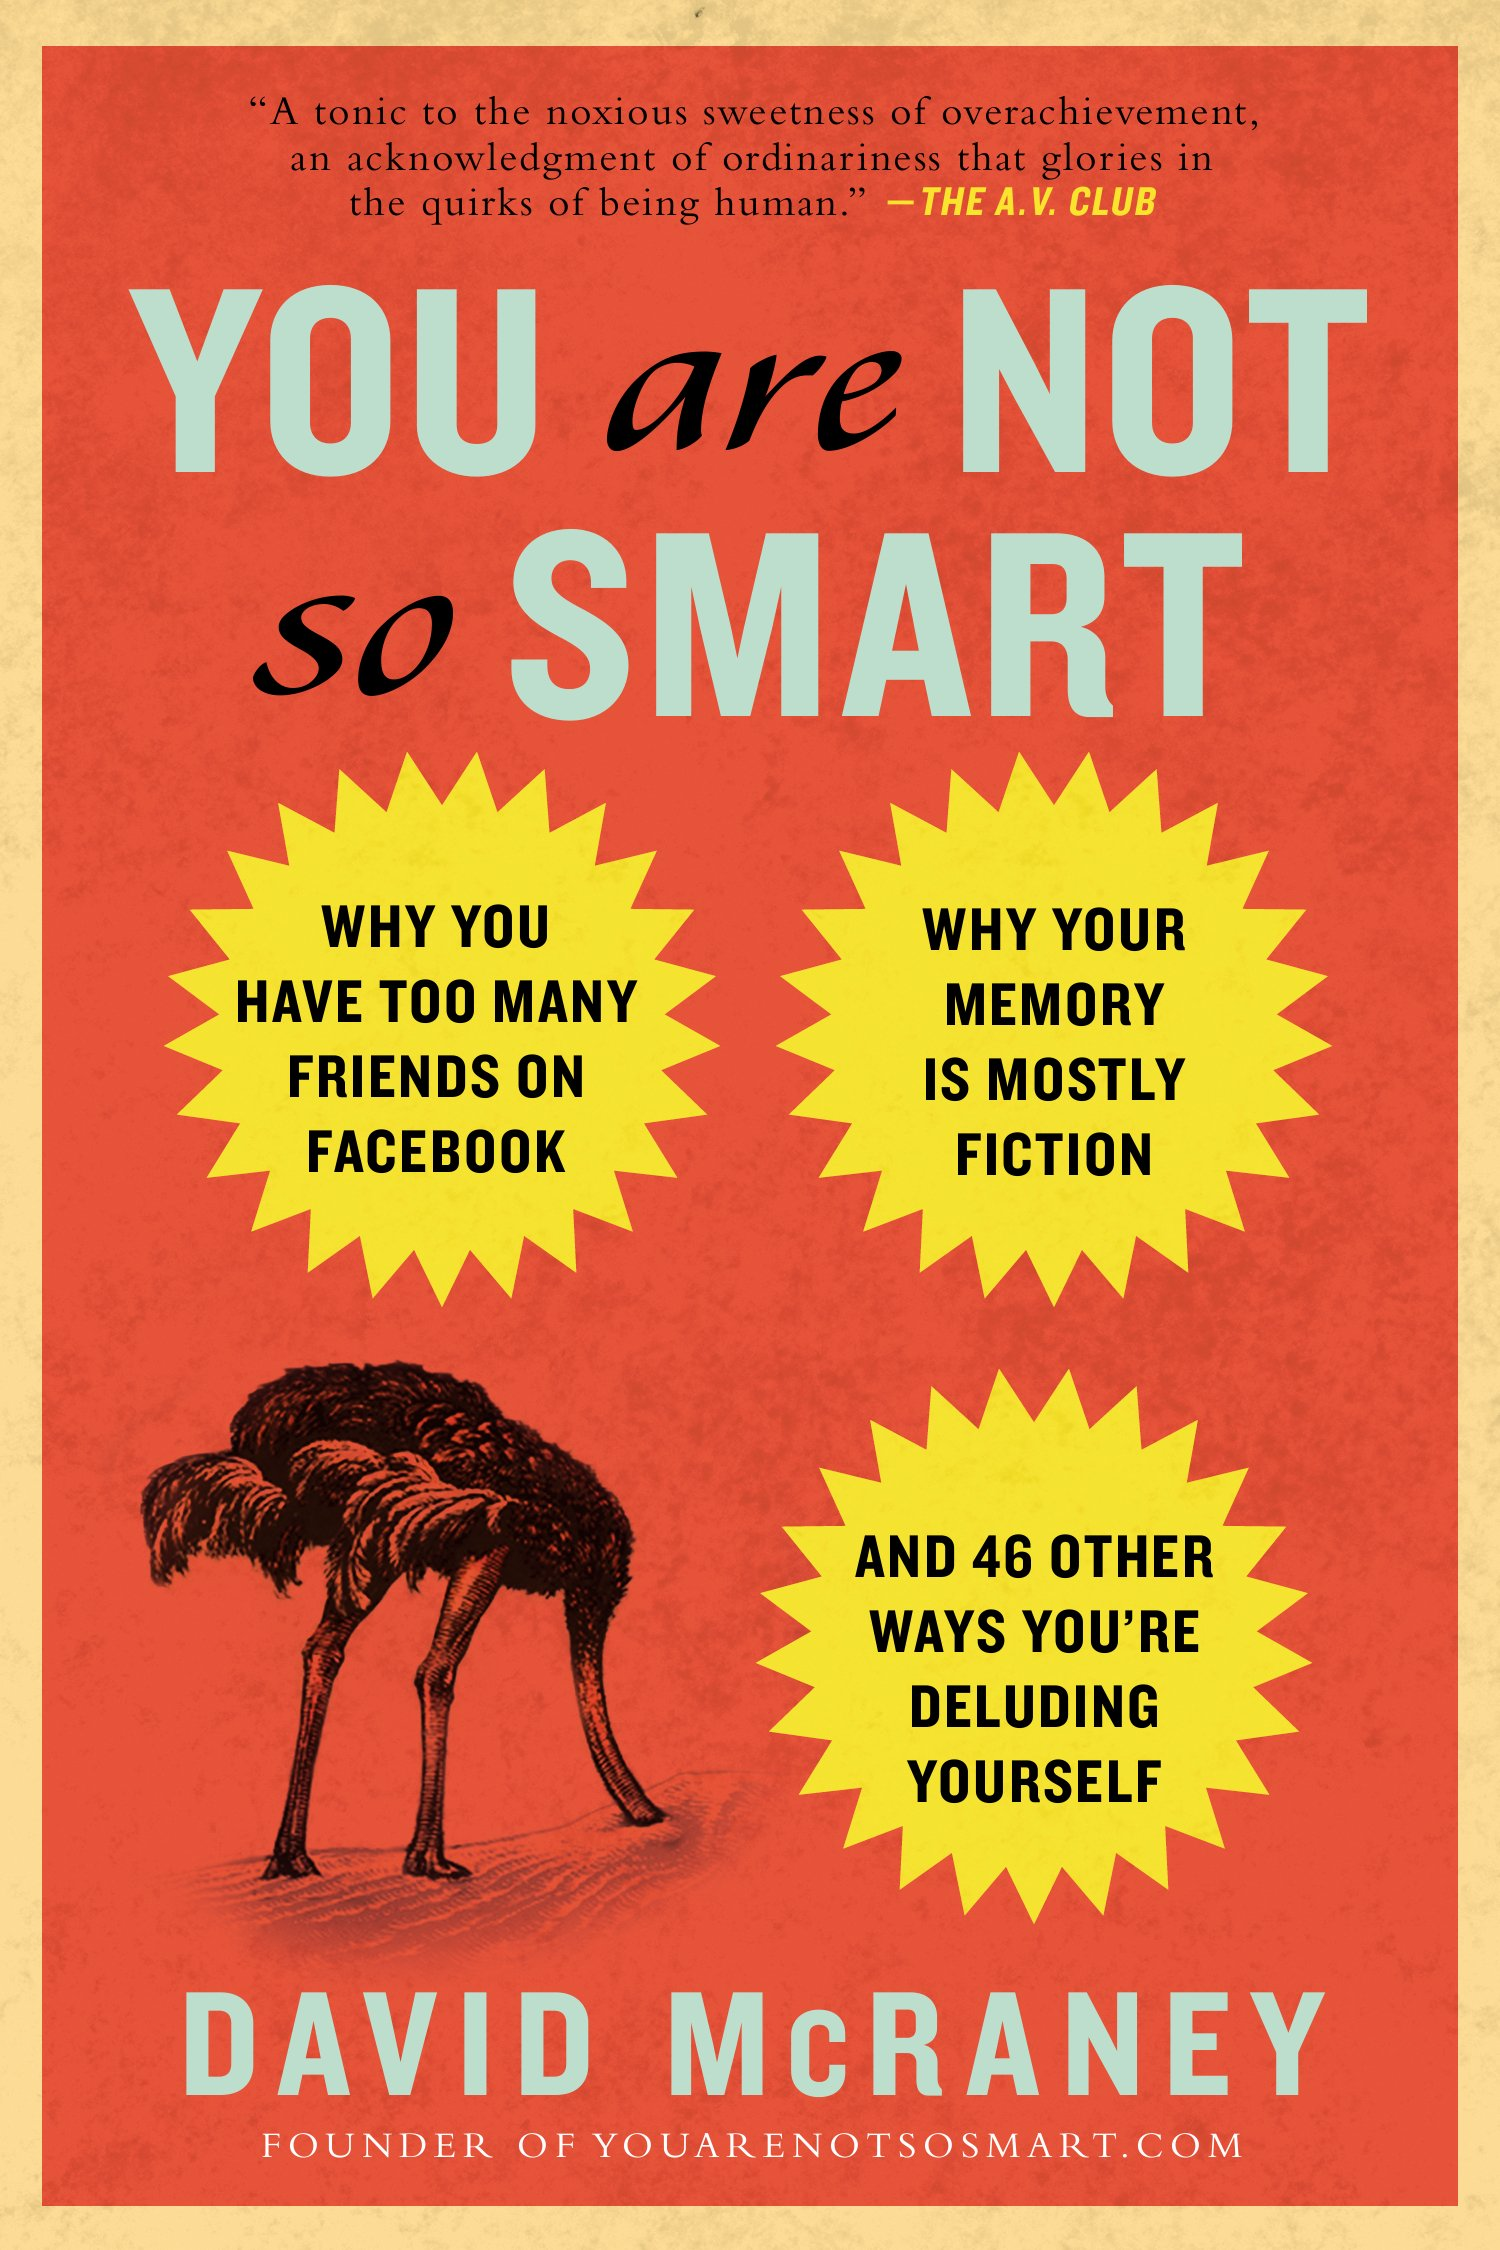 You Are Not So Smart  Why You Have Too Many Friends On Facebook Why Your Memory Is Mostly Fiction An D 46 Other Ways You're Deluding Yourself  English Edition